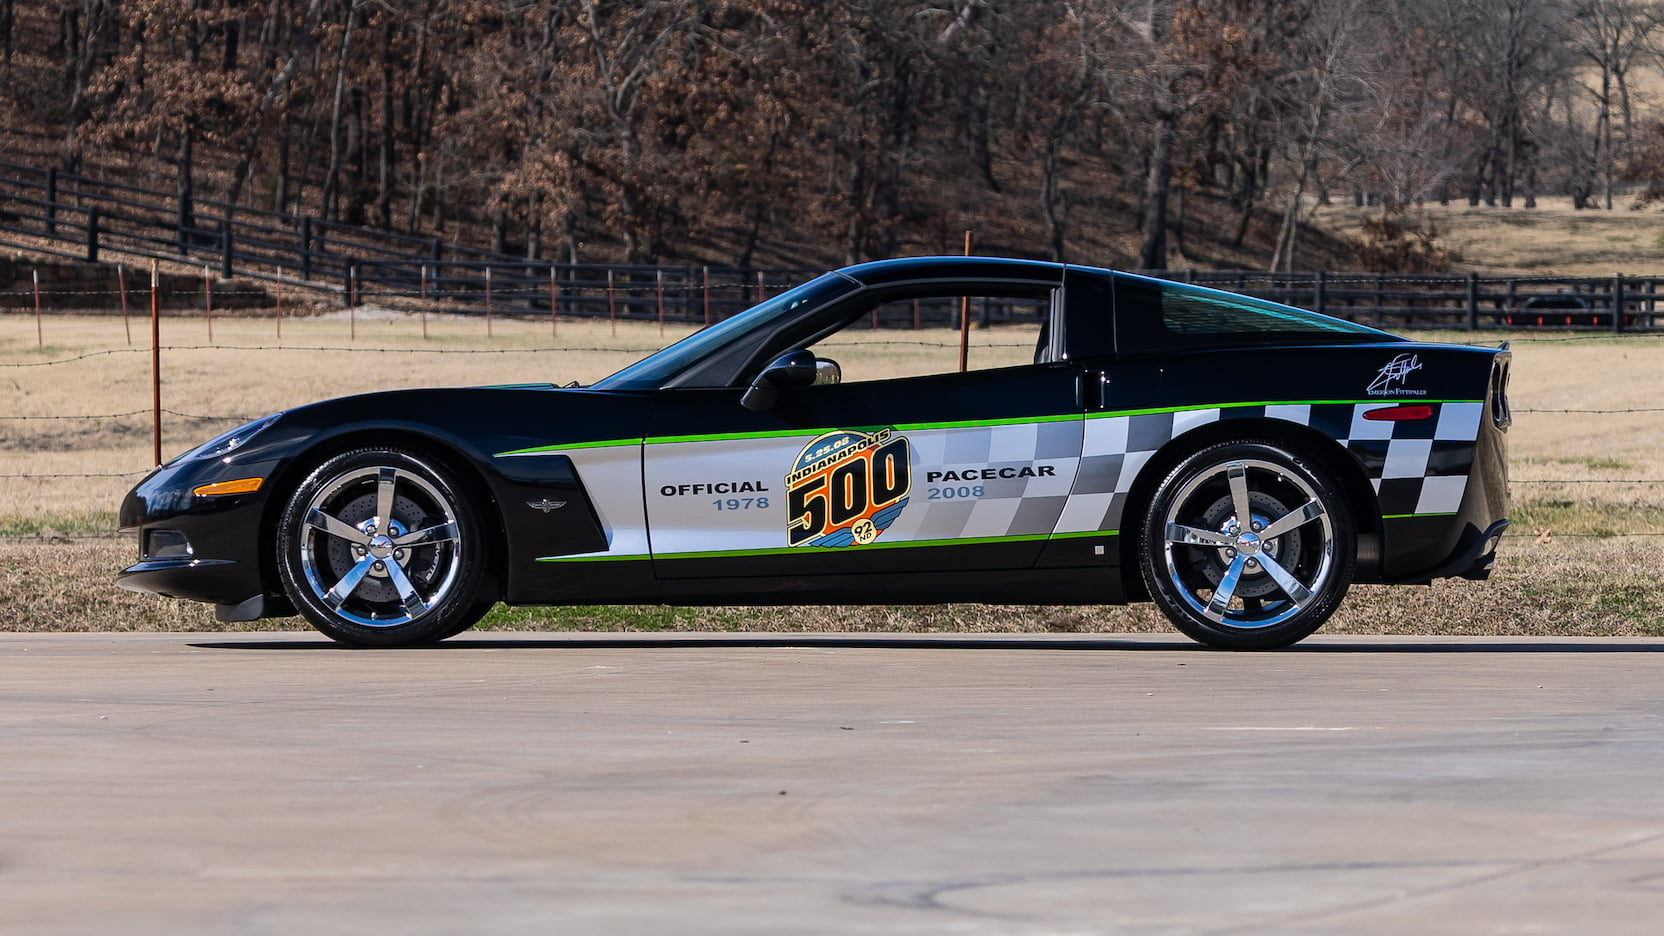 2008 Chevrolet Corvette Pace Car Edition Coupe